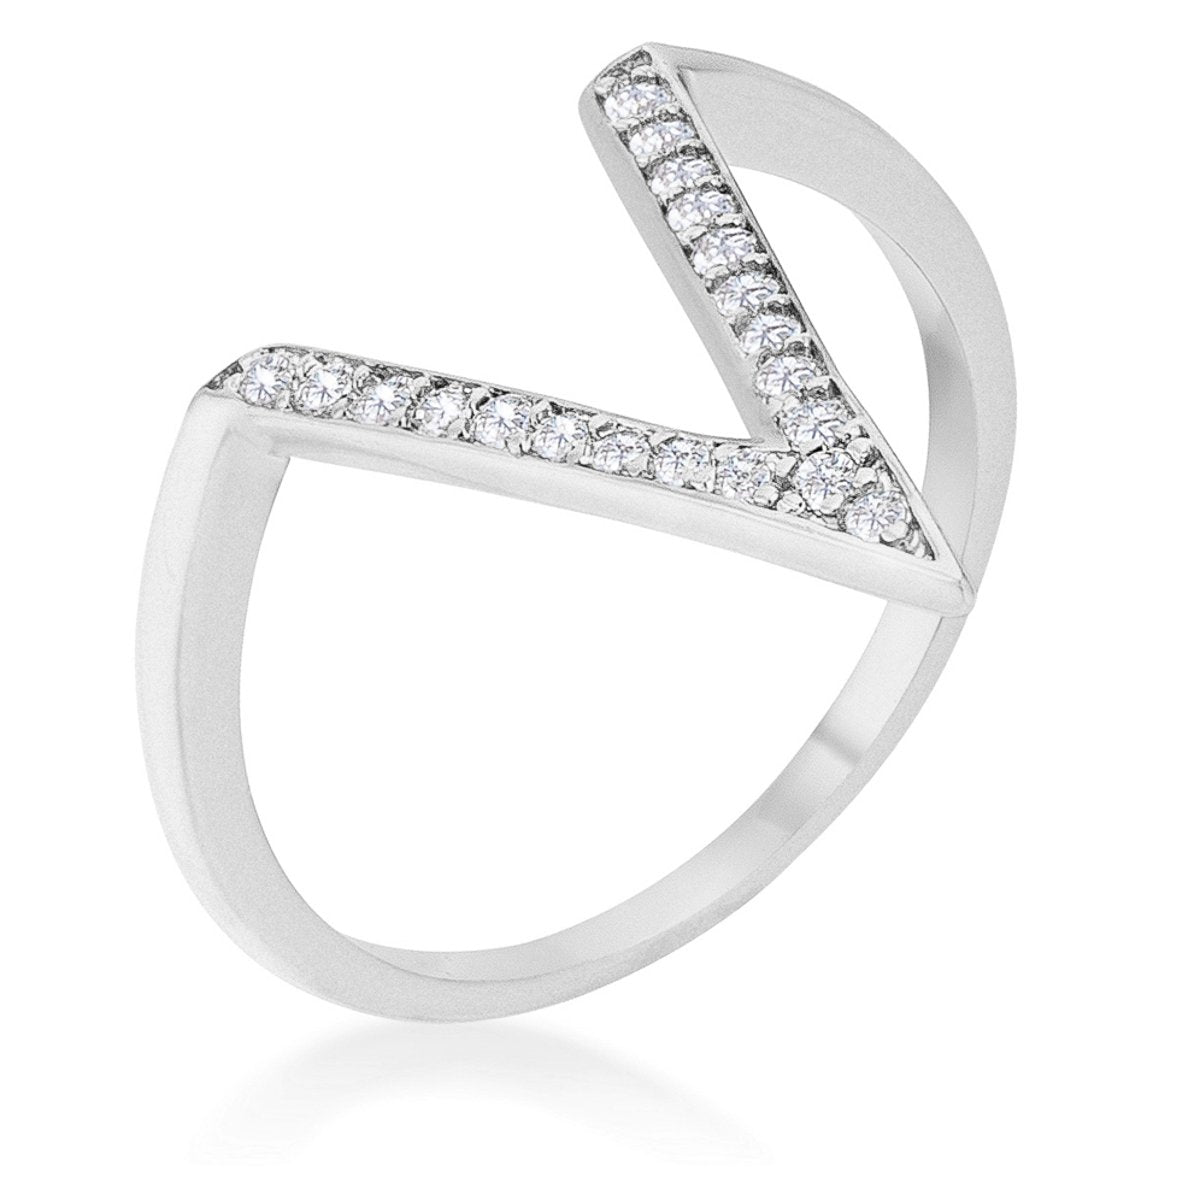 Michelle 0.2ct CZ Rhodium Delicate V-Shape Ring - R08464R-C01